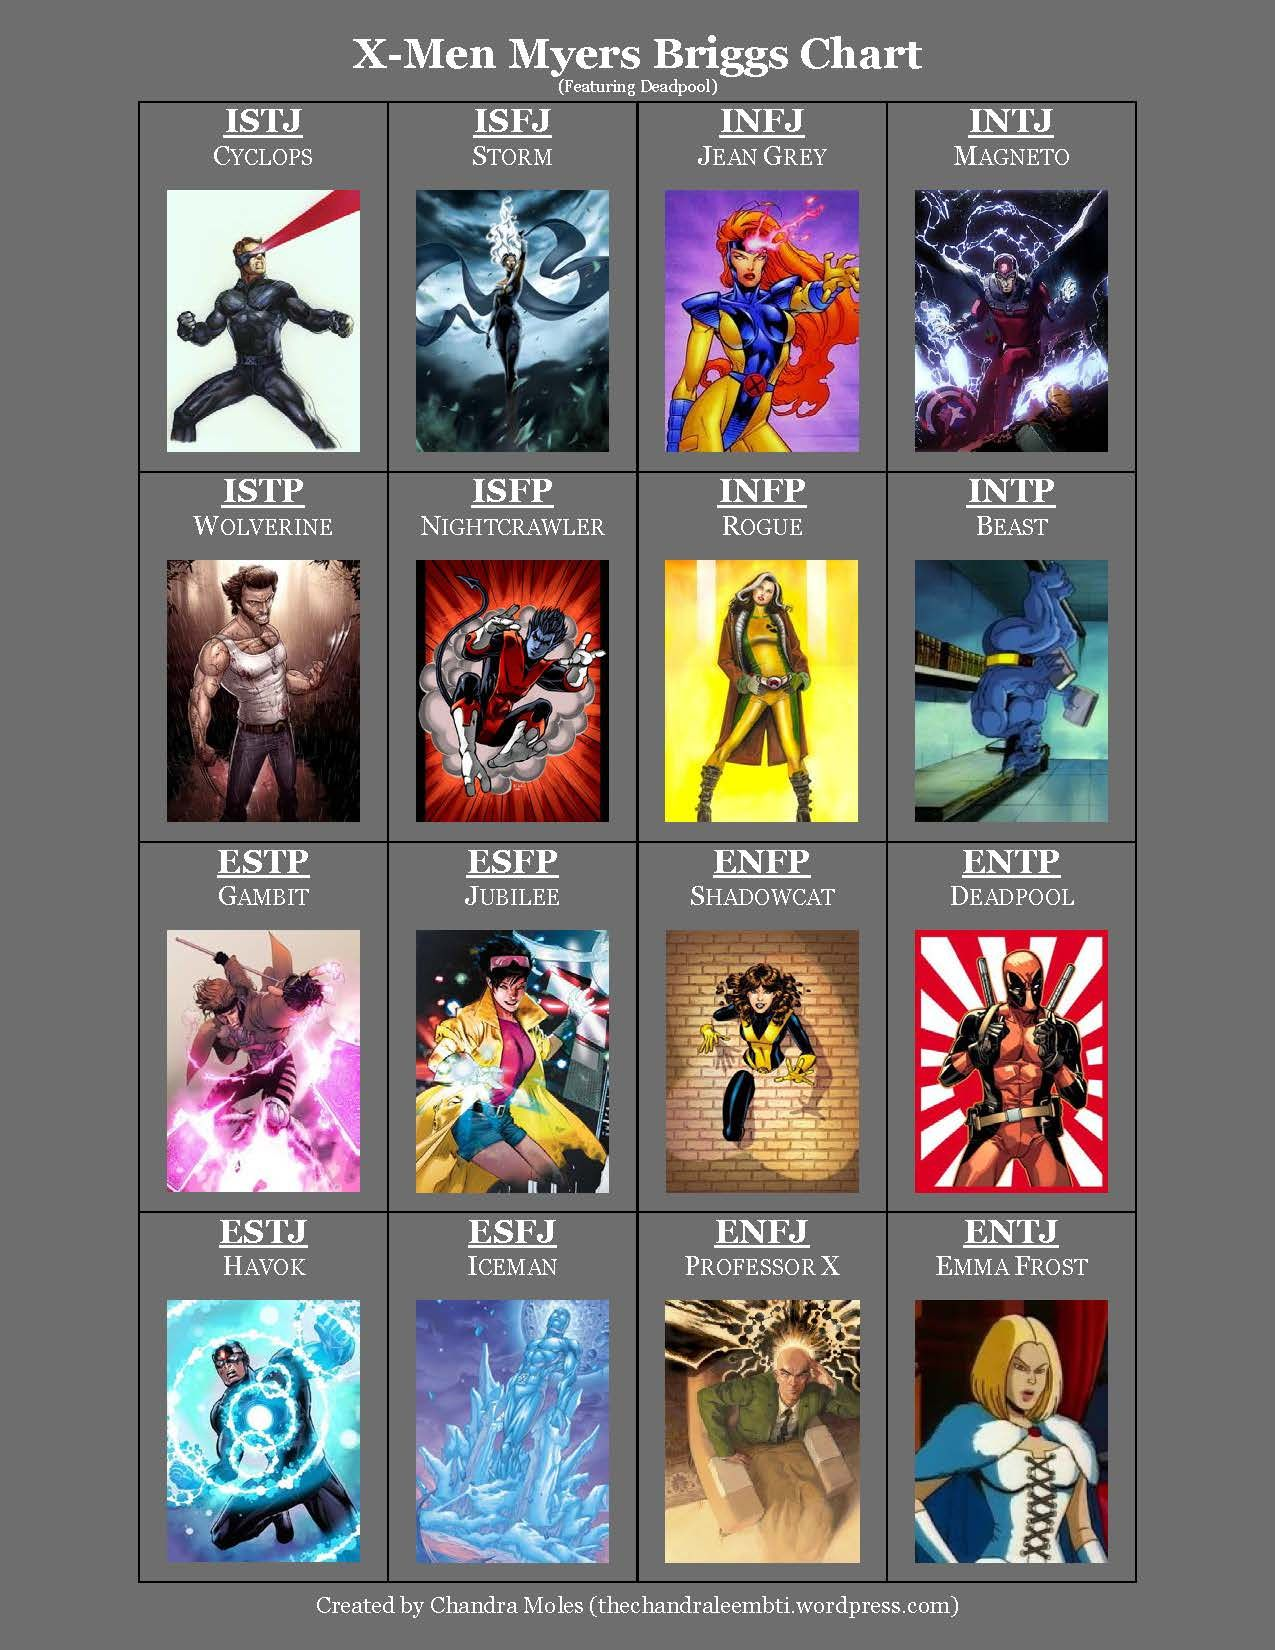 X-Men Myers Briggs Chart - Pinning because it makes me happy. And because it's true lol